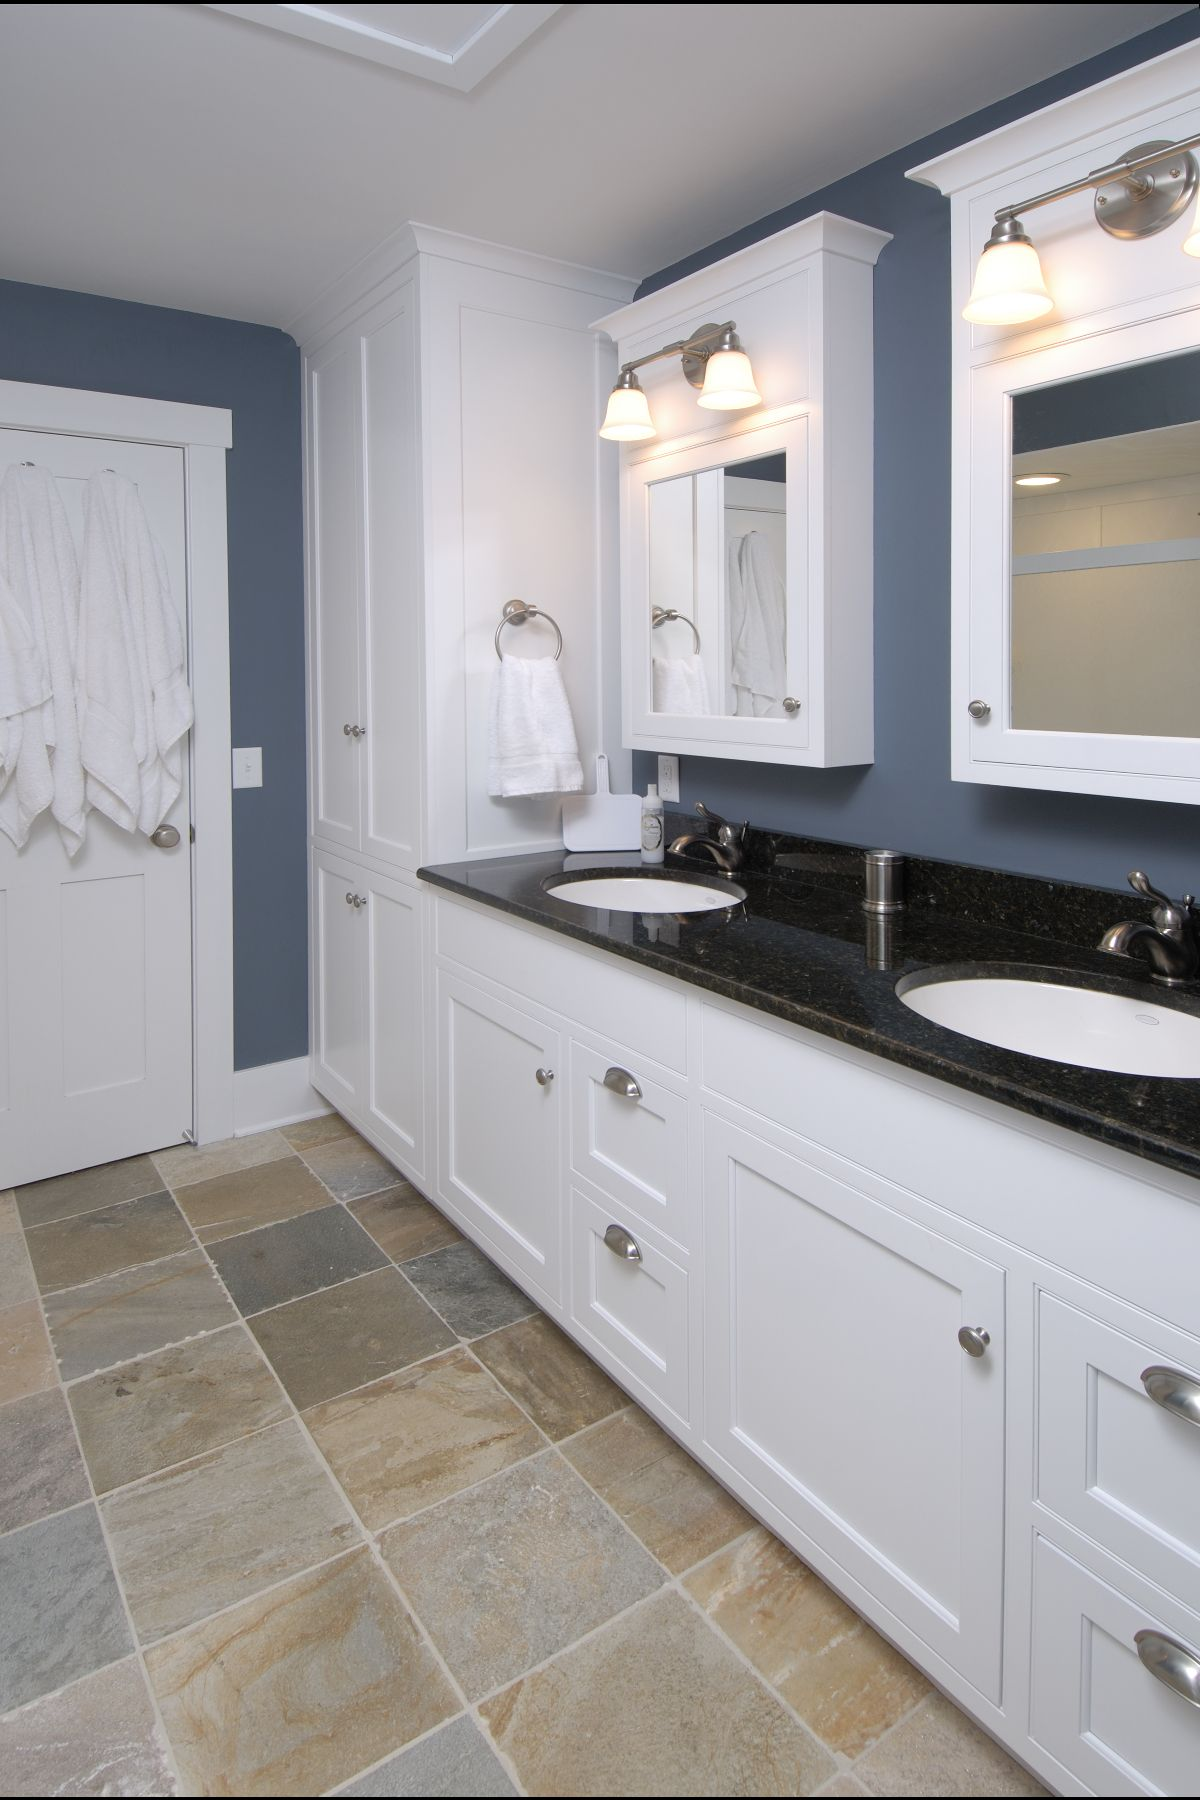 bathroom remodel completed by dehaan remodeling specialists inc